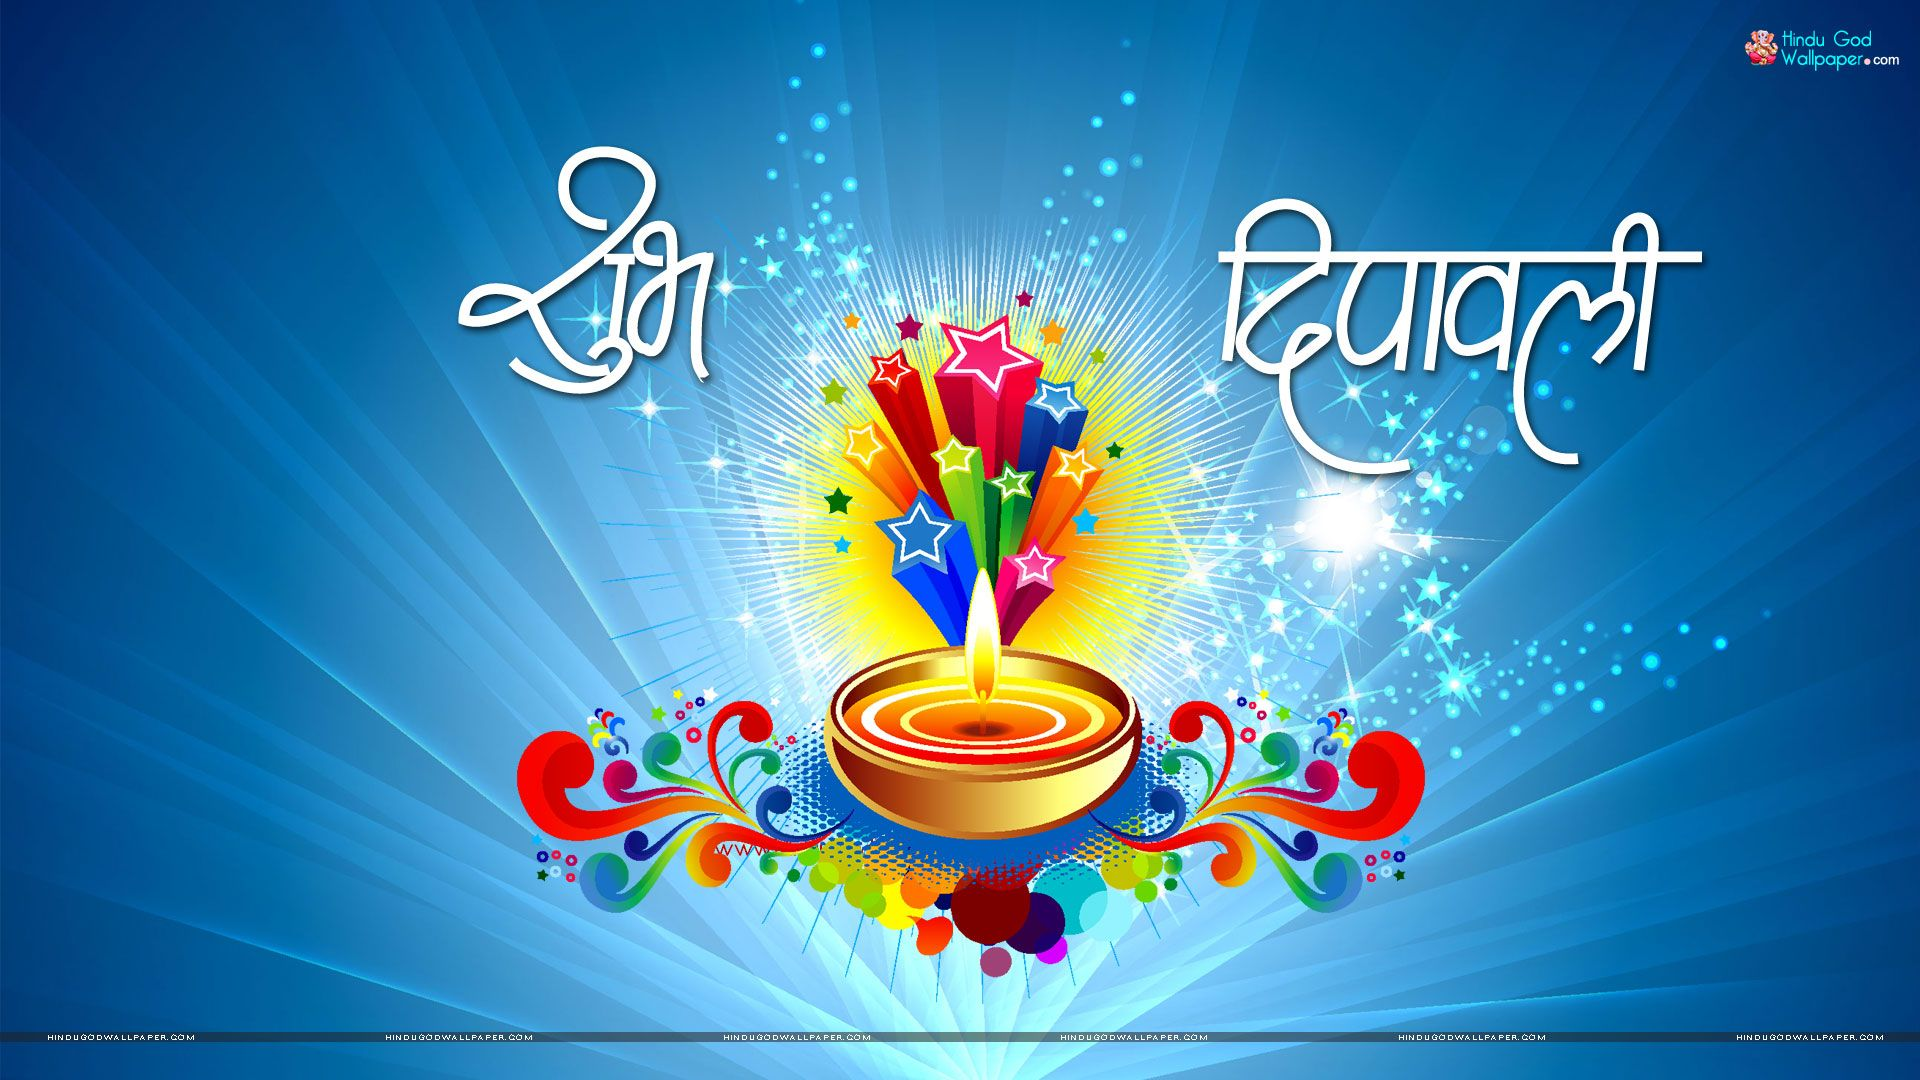 Happydiwaliwallpaper 100 Happydiwaliimages Pictures